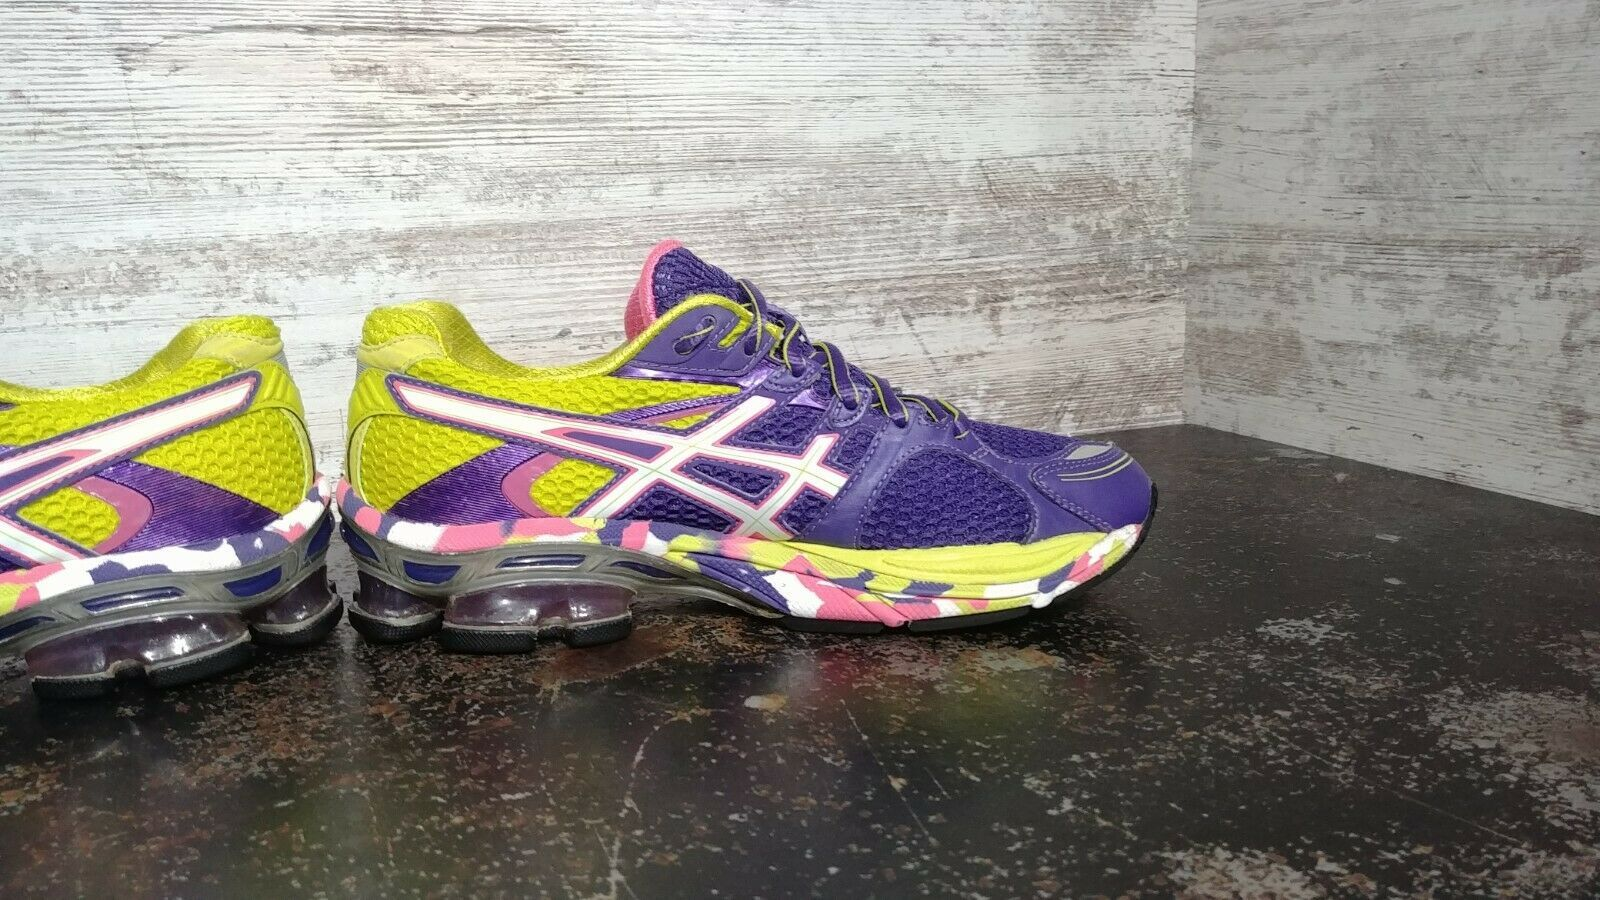 Womens Asics Gel Sendai Running Shoes SZ 6.5 37.5 Used T36DQ Sneakers Trainers image 6